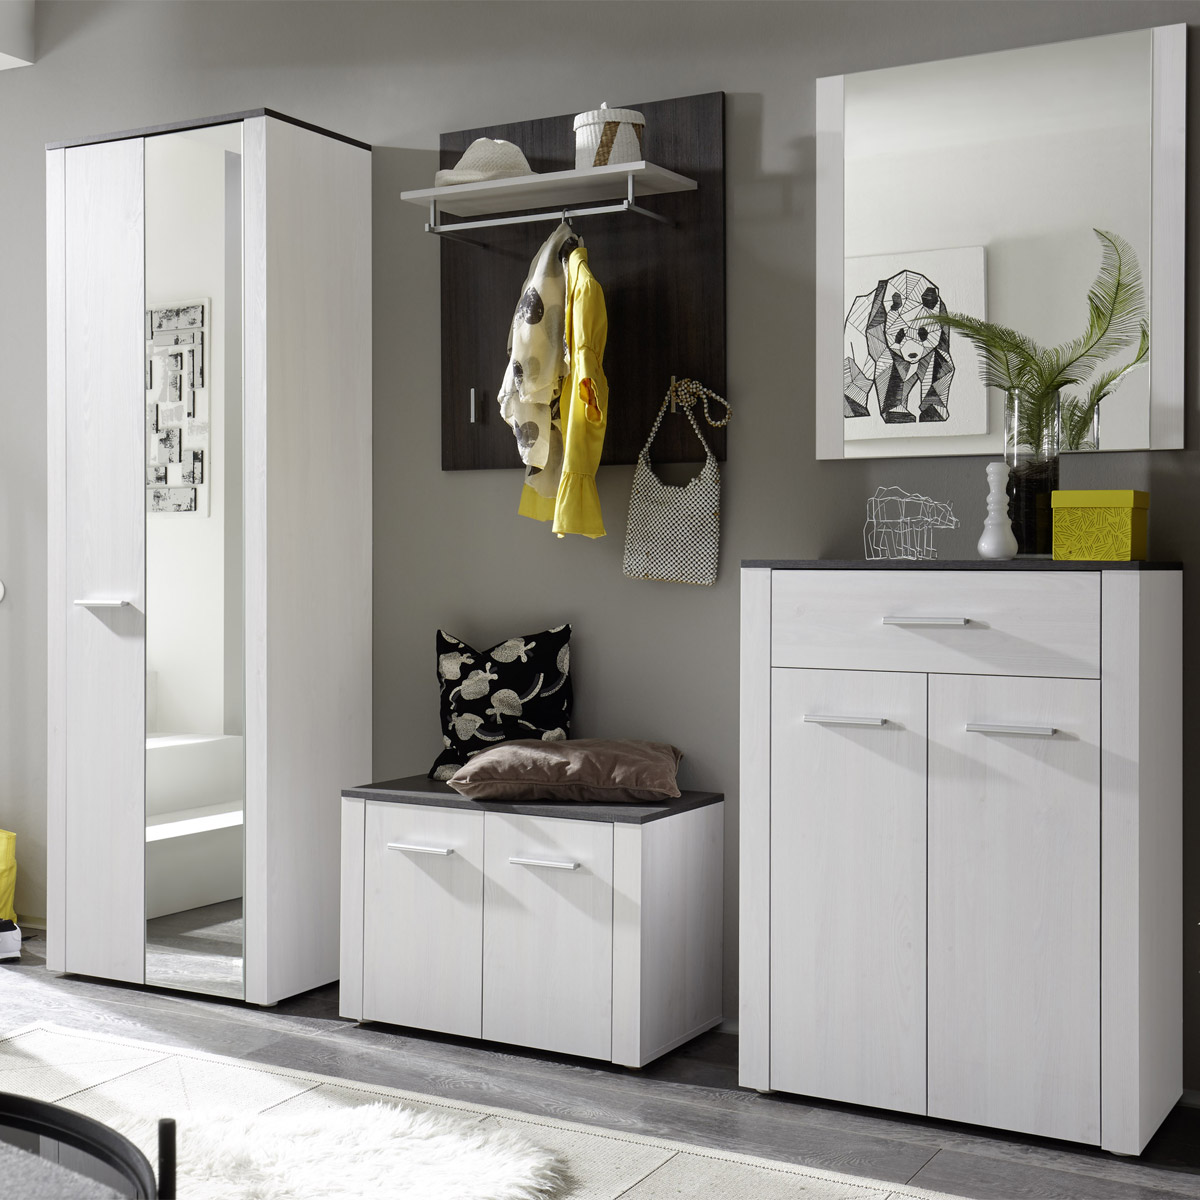 garderobe dakar set 5 teilig in sibiu l rche touchwood dielenschrank flurm bel ebay. Black Bedroom Furniture Sets. Home Design Ideas